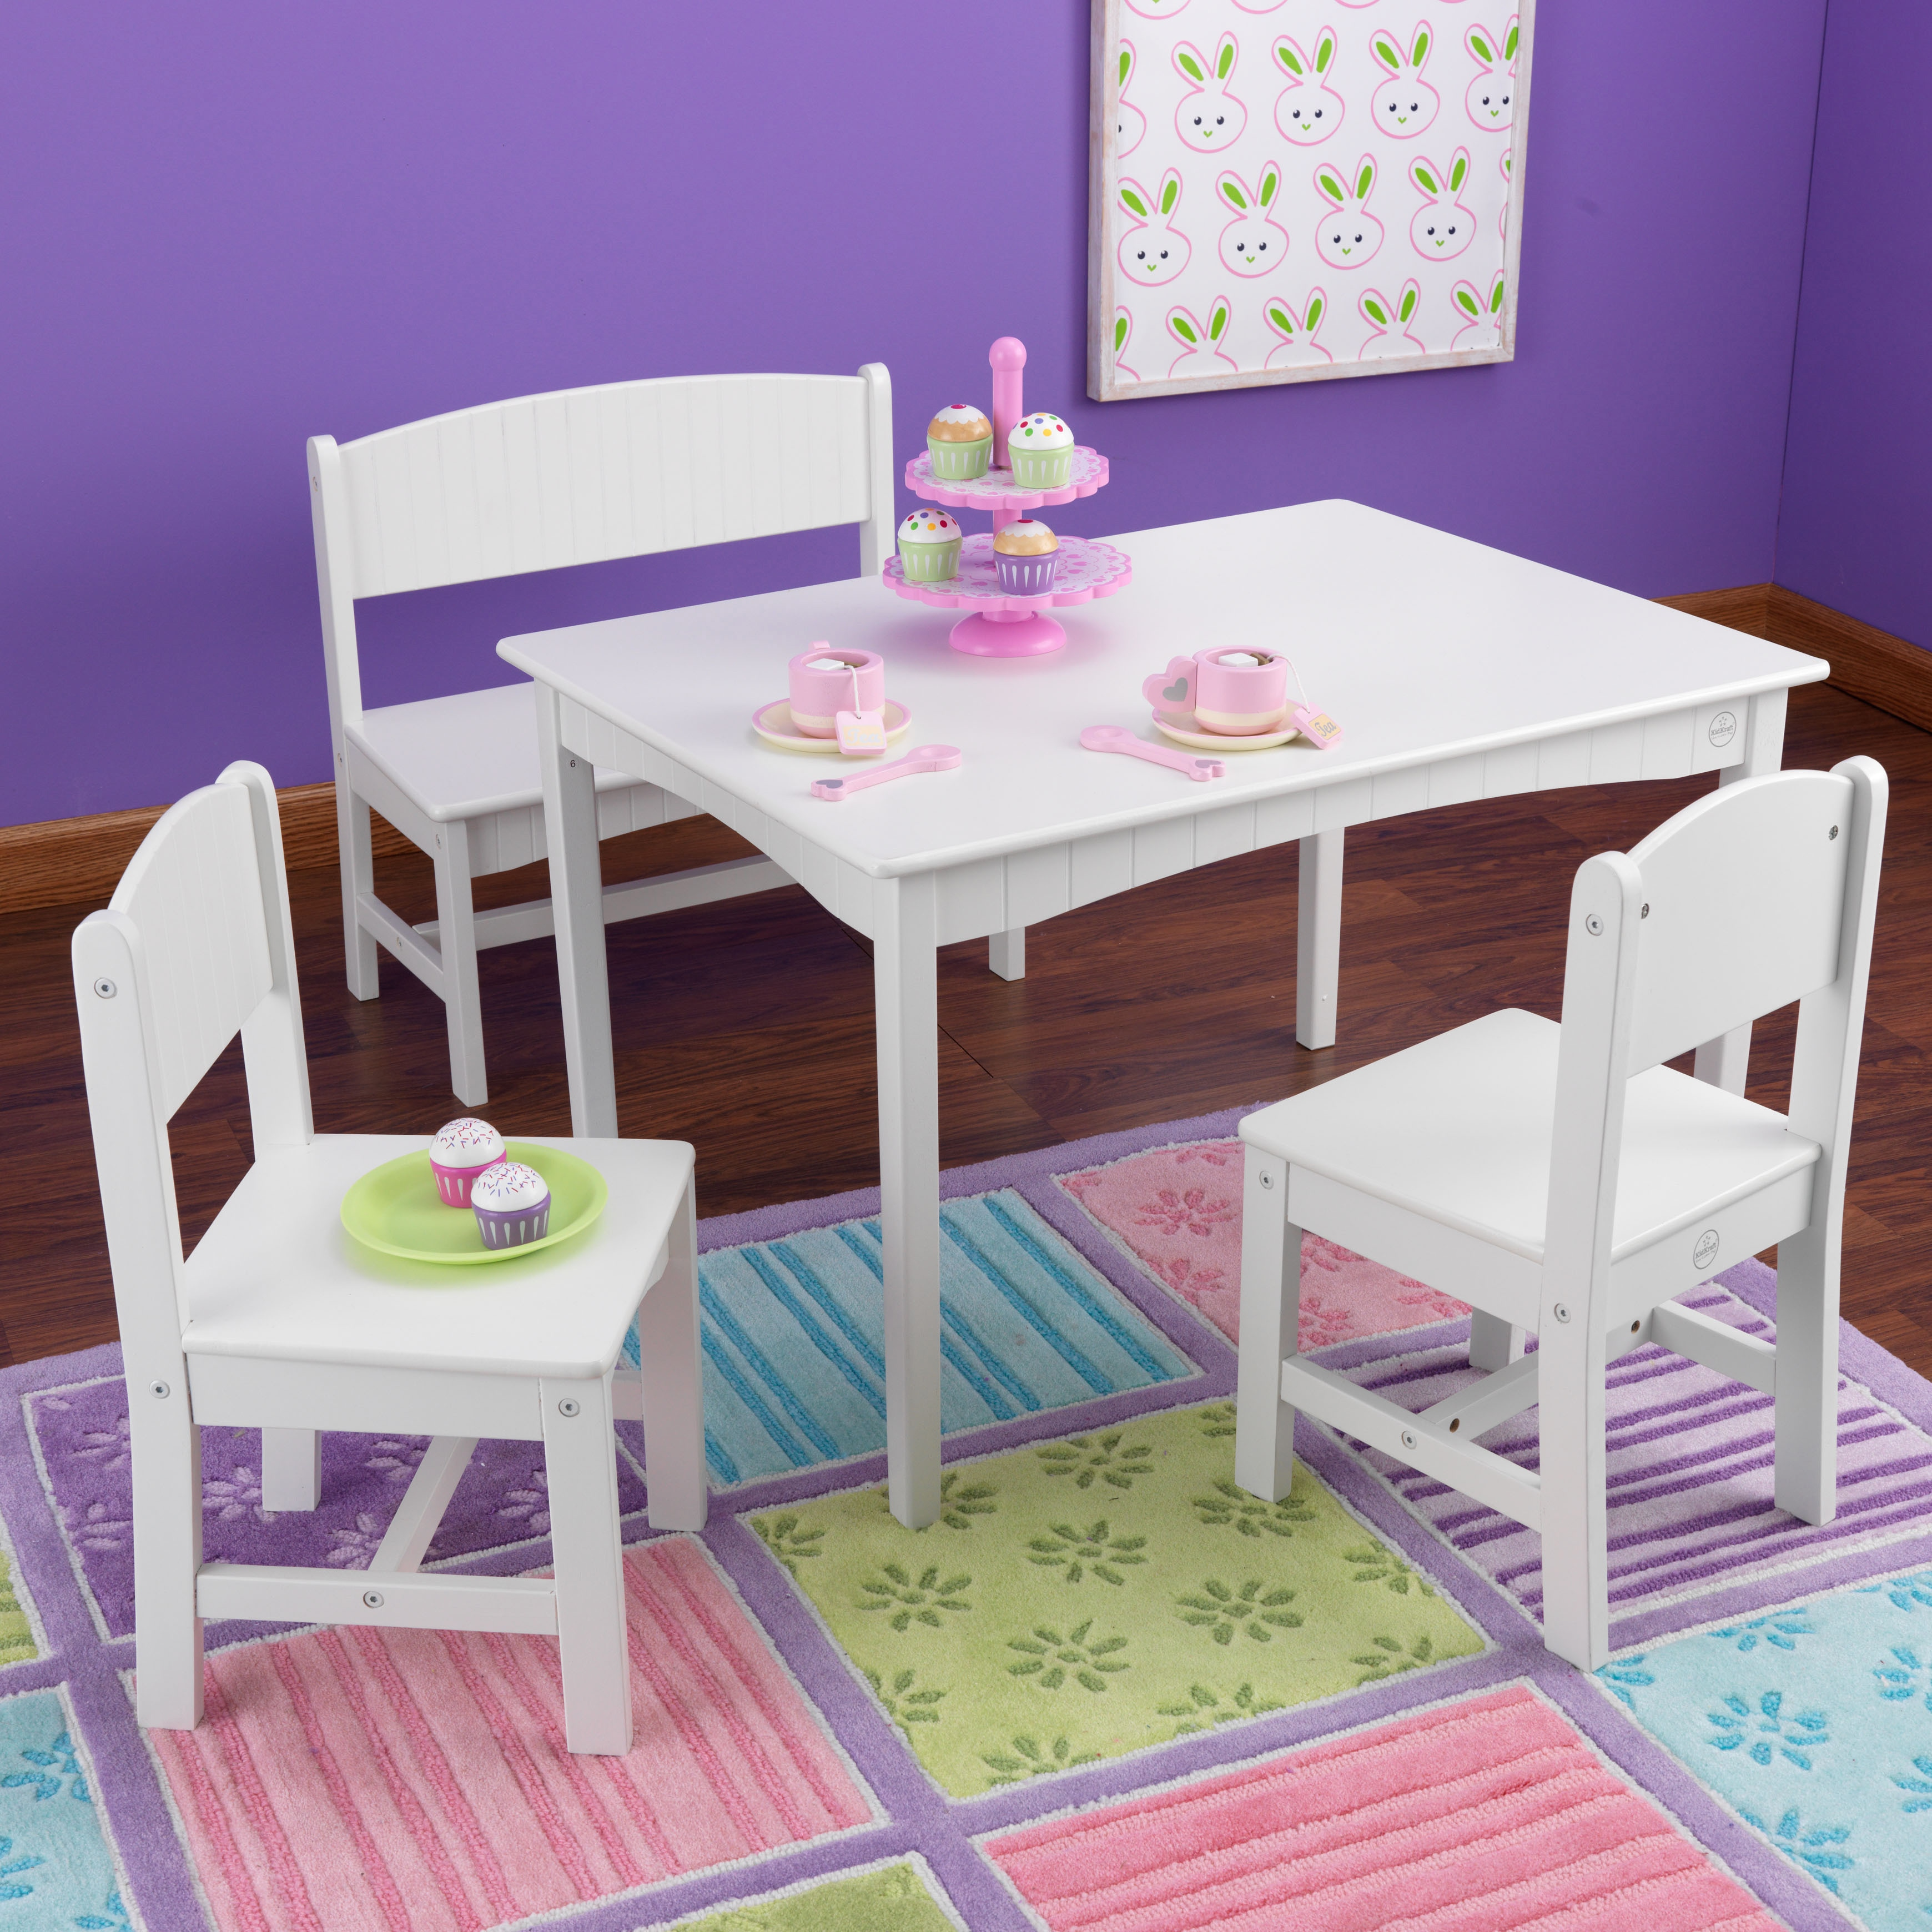 KidKraft Nantucket 4 Piece Table, Bench, And Chairs Set